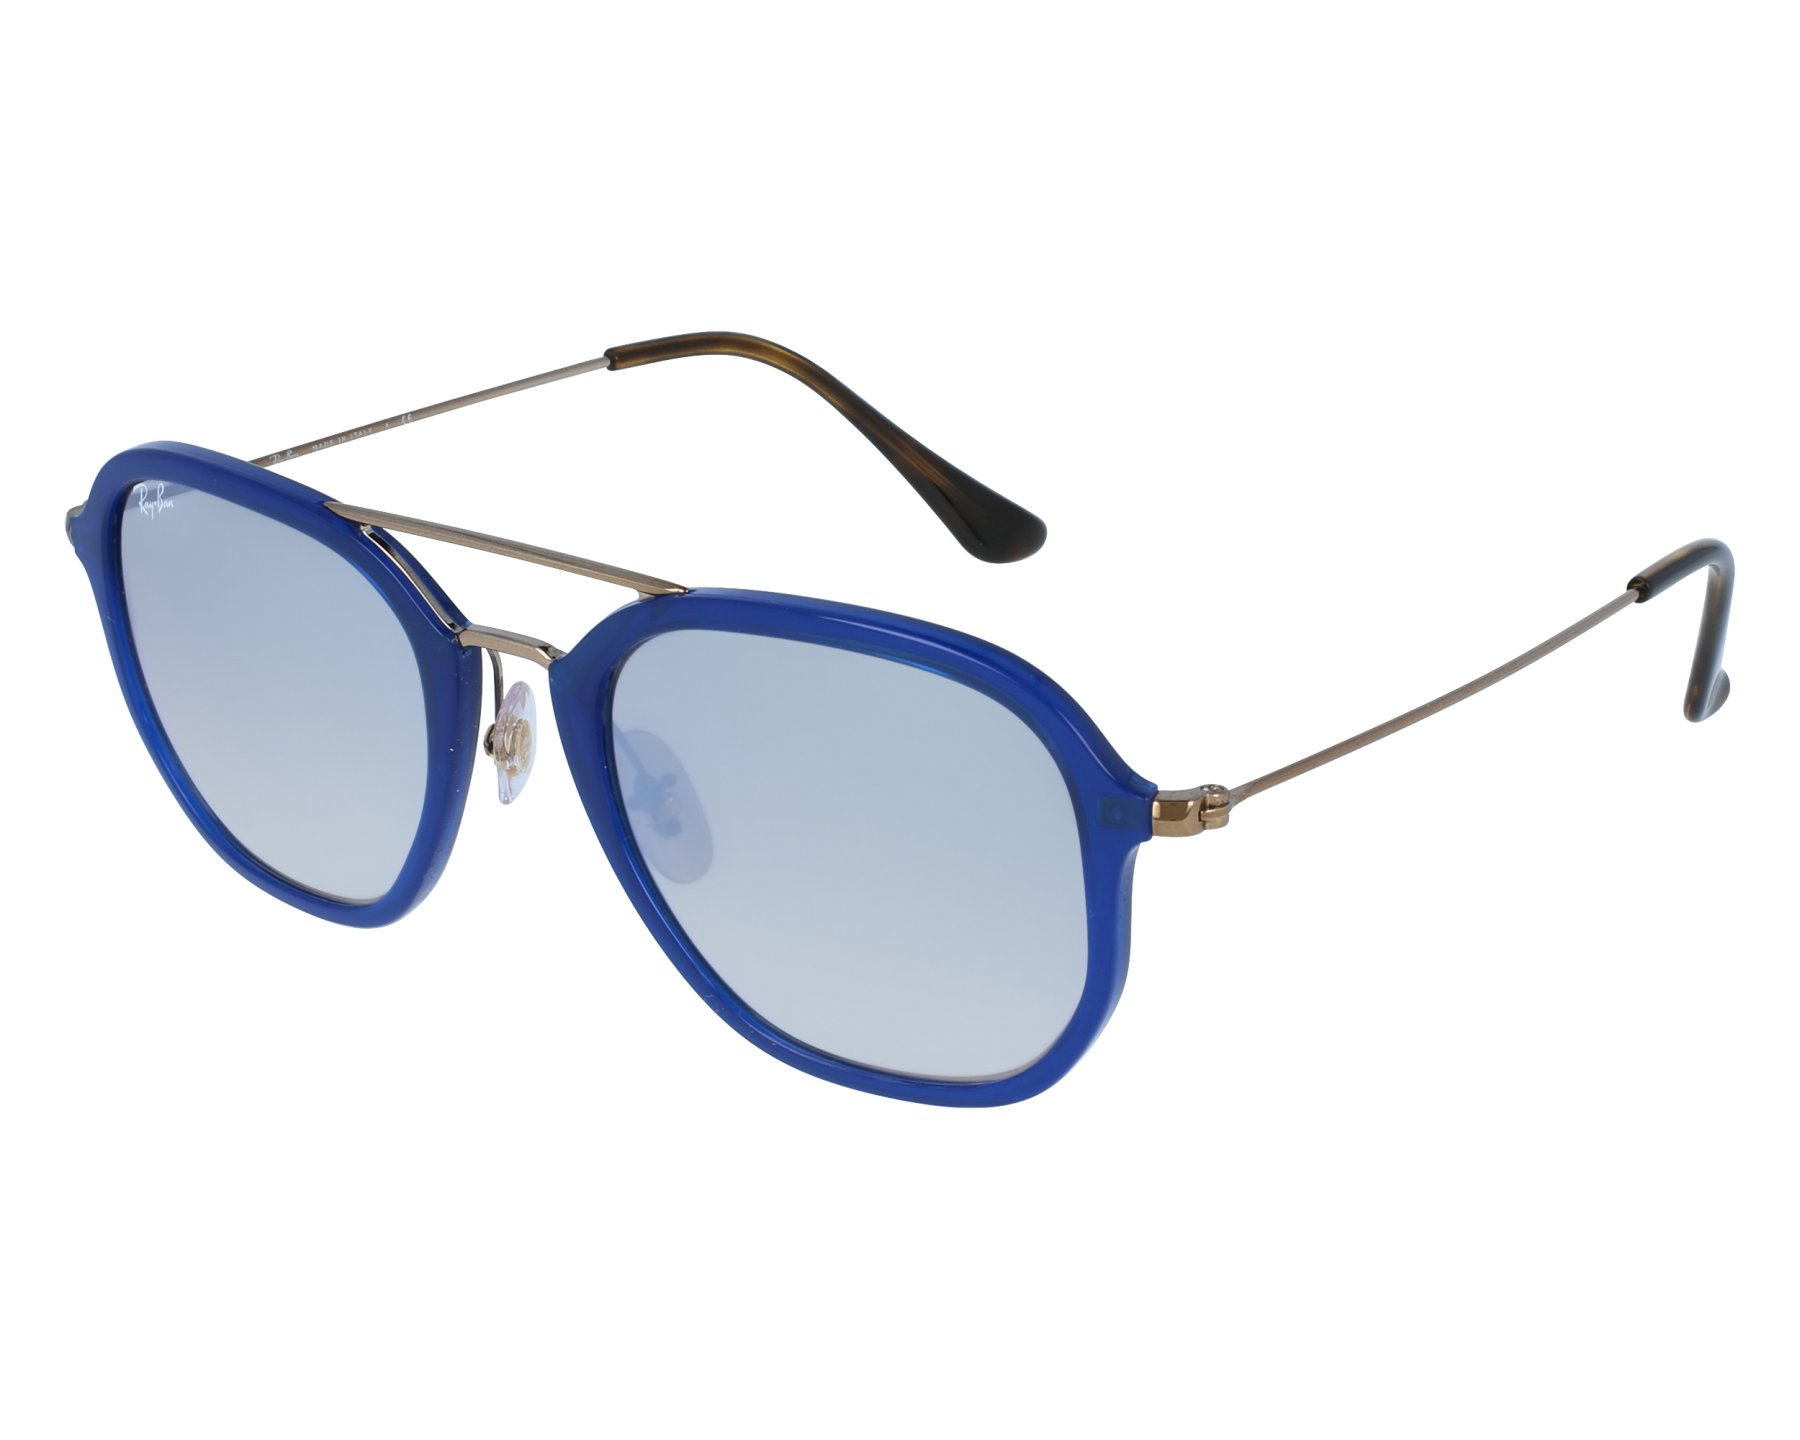 0da4d3eb46 Sunglasses Ray-Ban RB-4273 6259 9U 52-21 Blue denim Gun